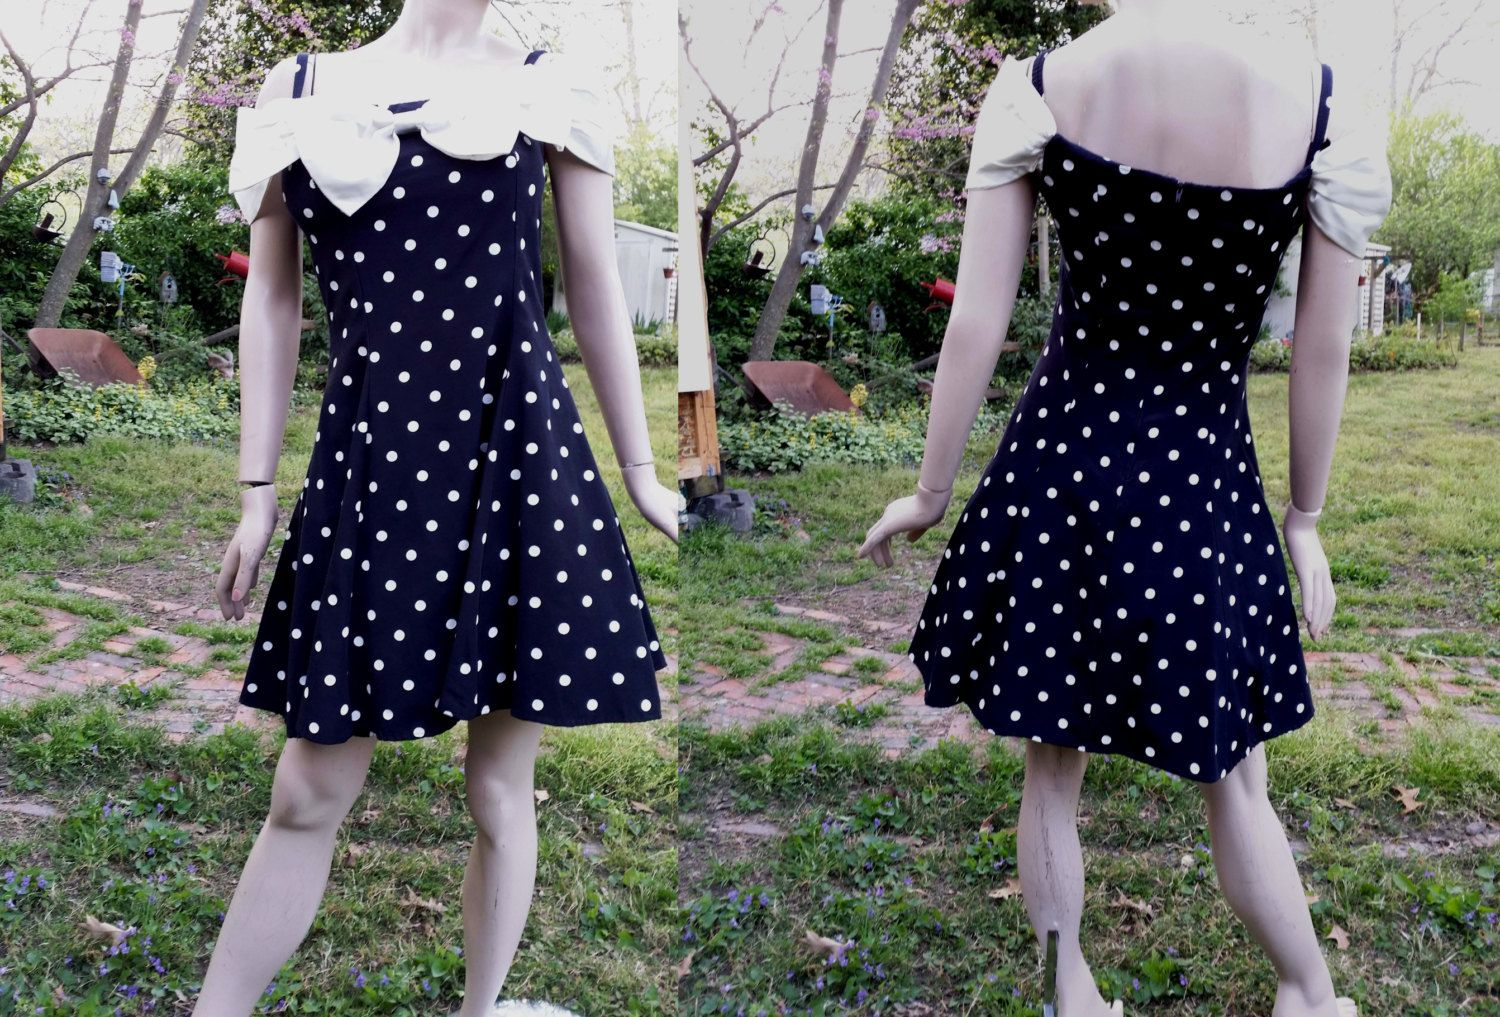 31940825f8108 Off Shoulder Polka Dot Prom Dress/ 80s Dress /80s Prom Dress/ 80s Party  Dress/ Vintage Dress in Black & White by By Choice Dress US Size 8 by ...